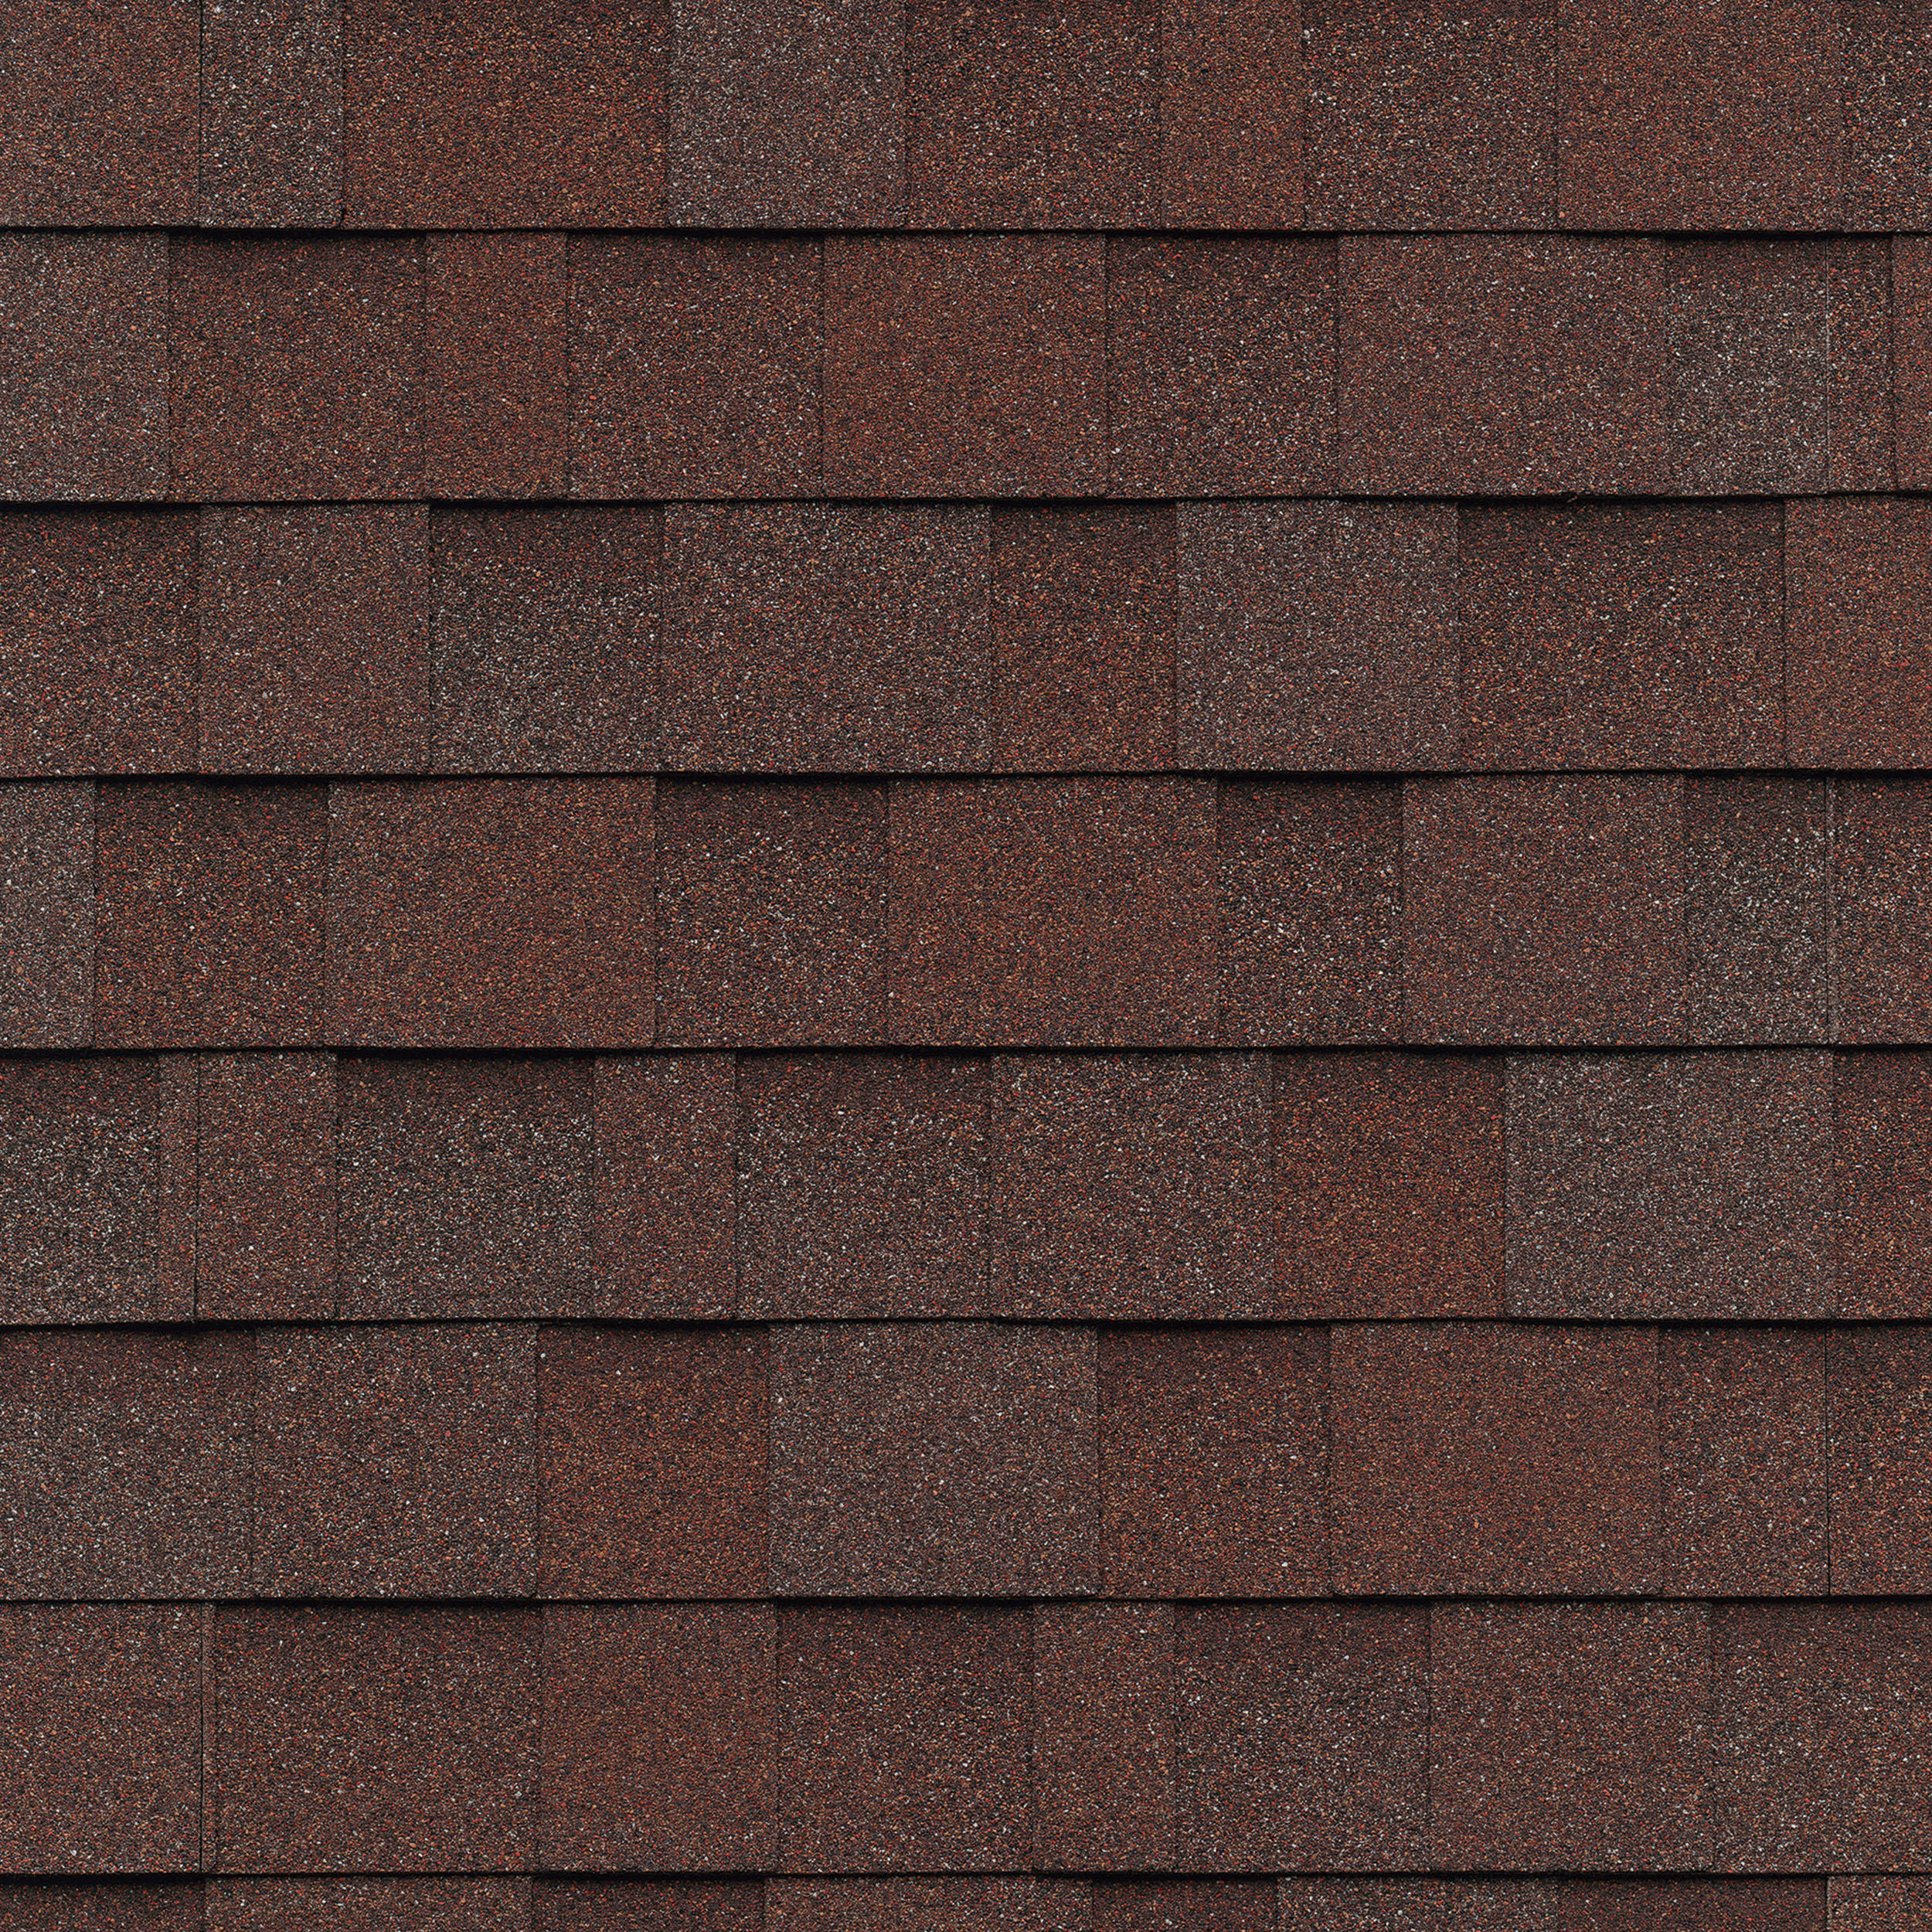 Shingles Cambridge Aged-Redwood